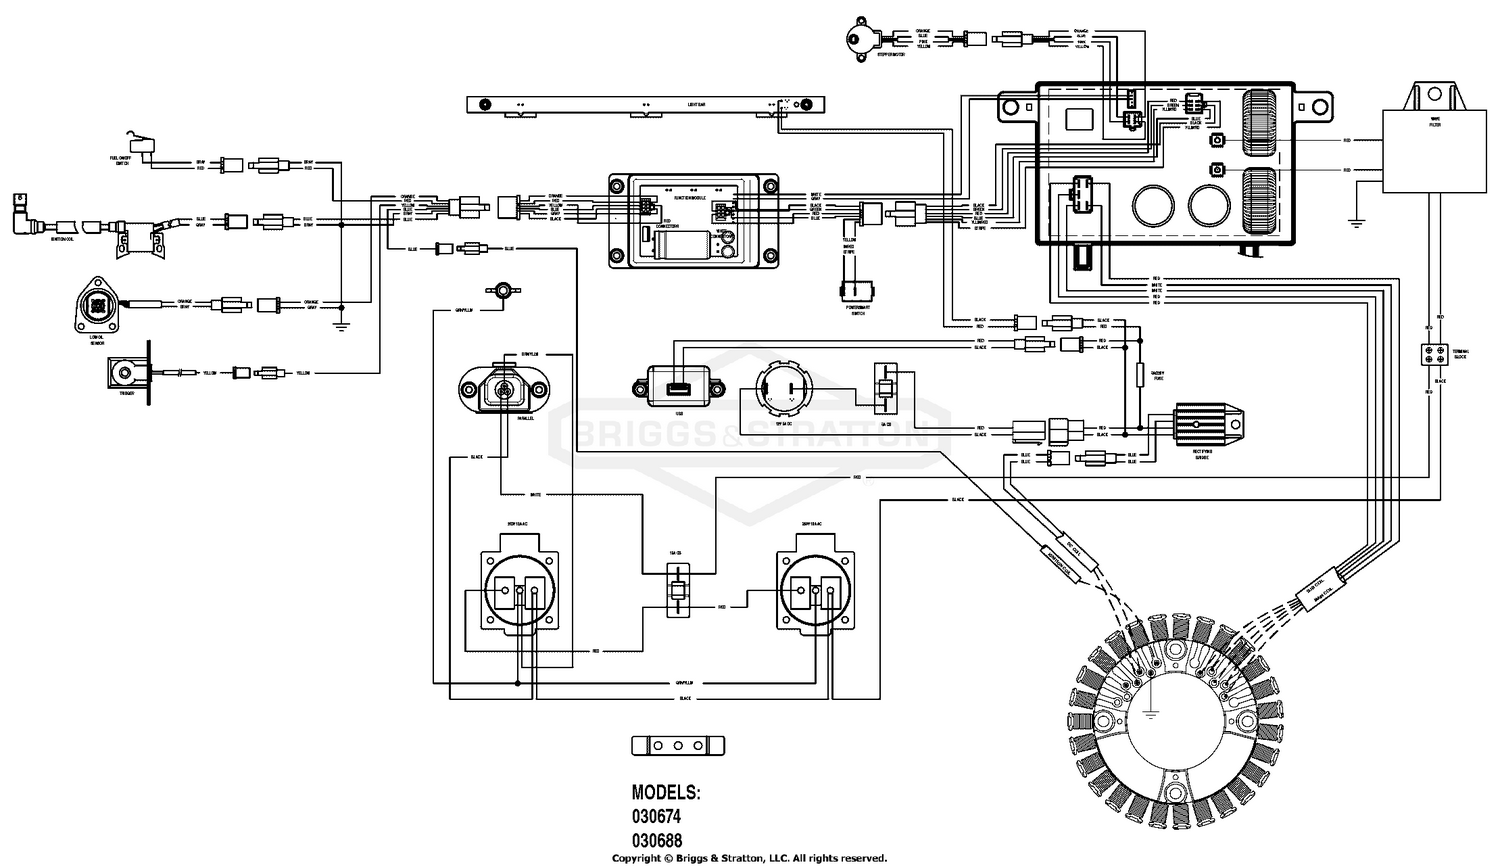 briggs and stratton generator wiring diagram briggs  amp  stratton power products del 26072017021729 030545 01  briggs  amp  stratton power